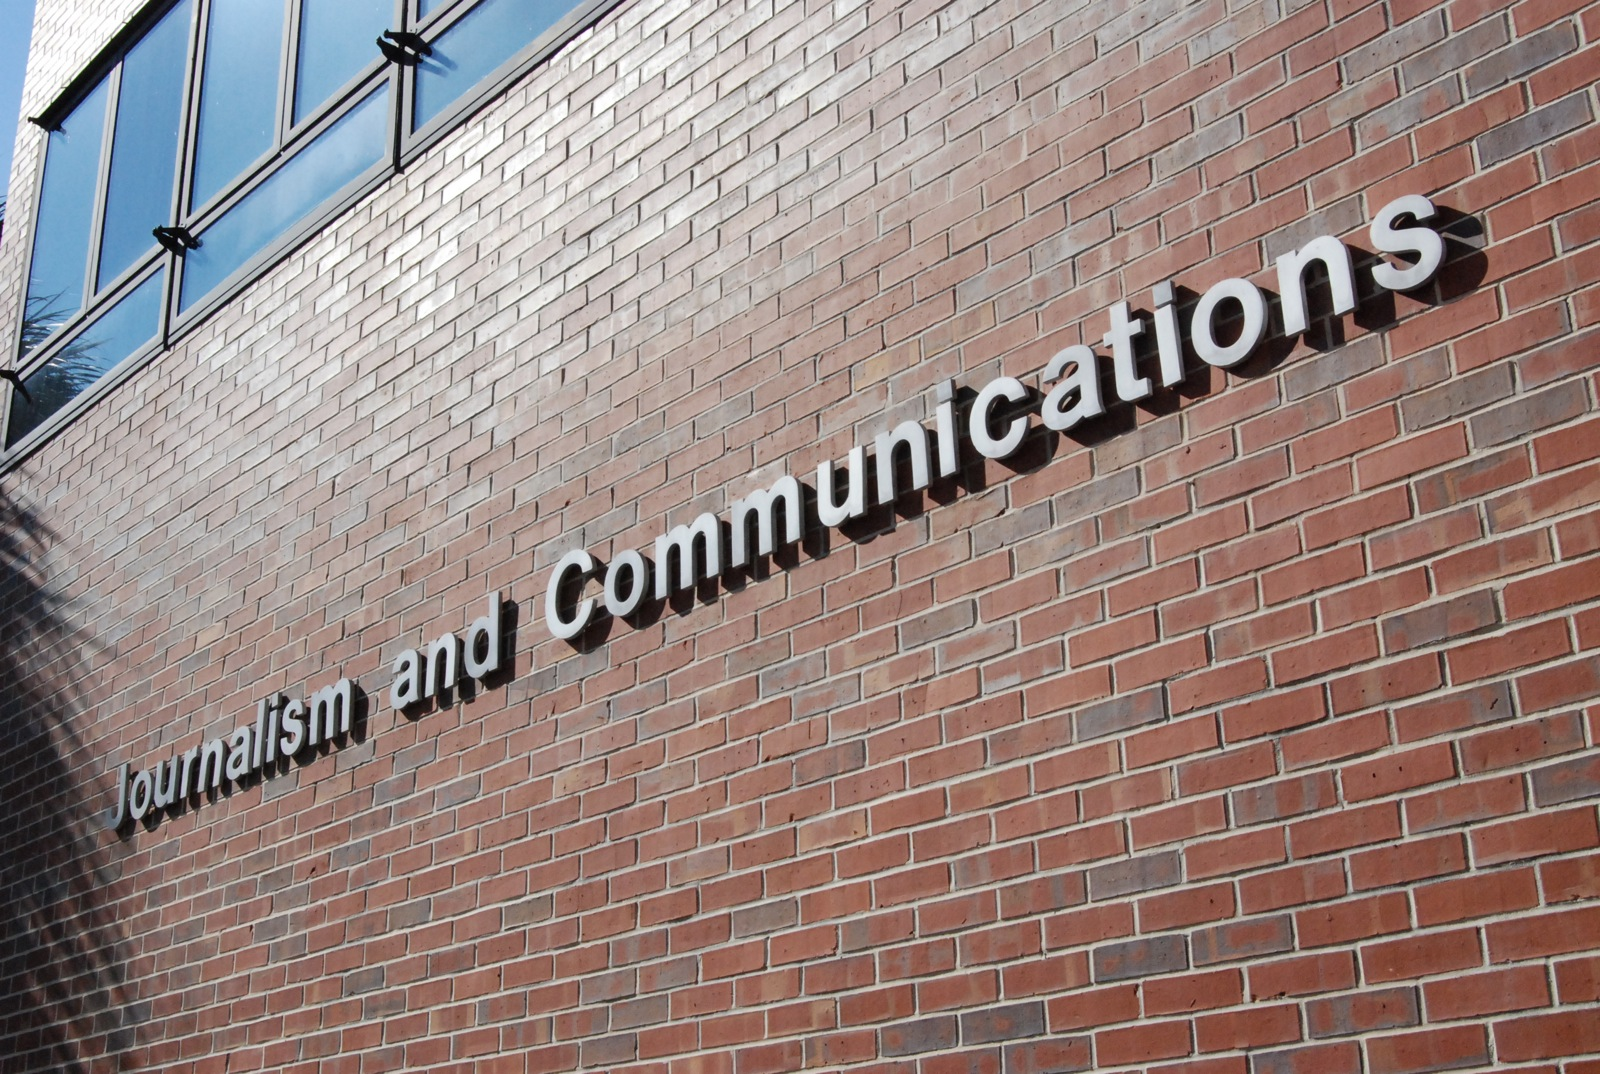 Journalism and Communications sign on red brick wall